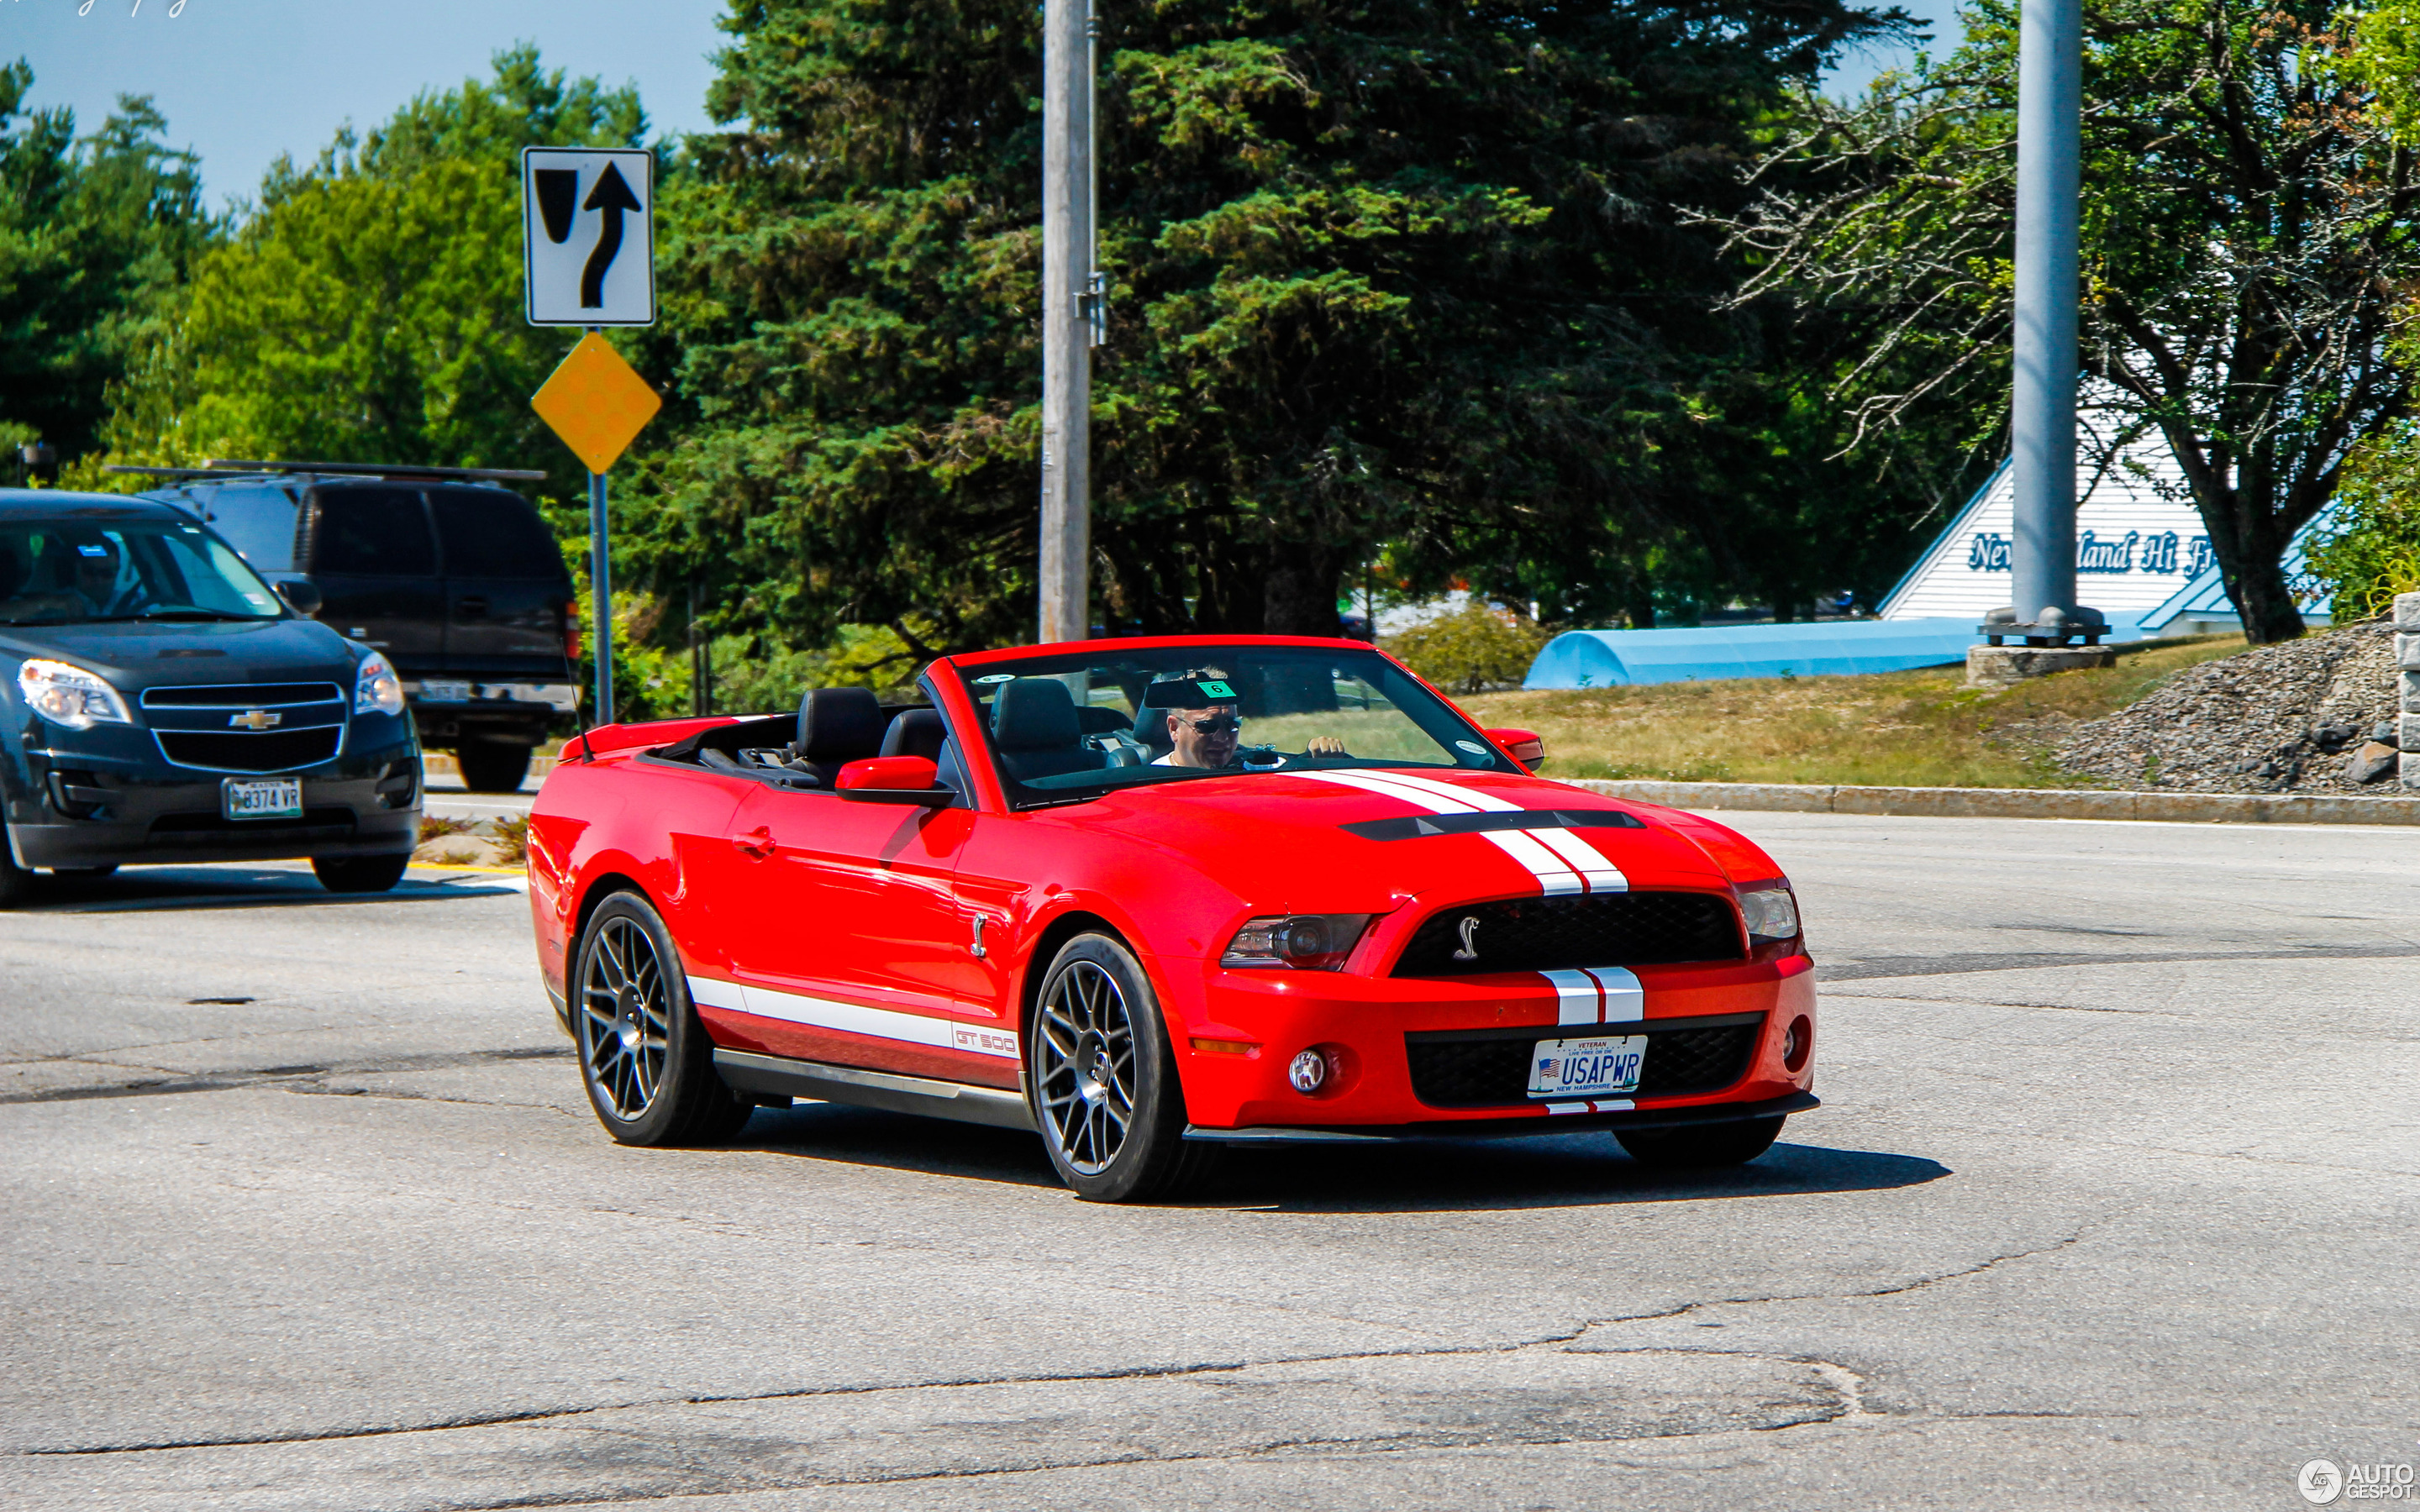 2010 Mustang Gt 0 To 60 >> Ford Mustang Shelby GT500 Convertible 2010 - 26 February